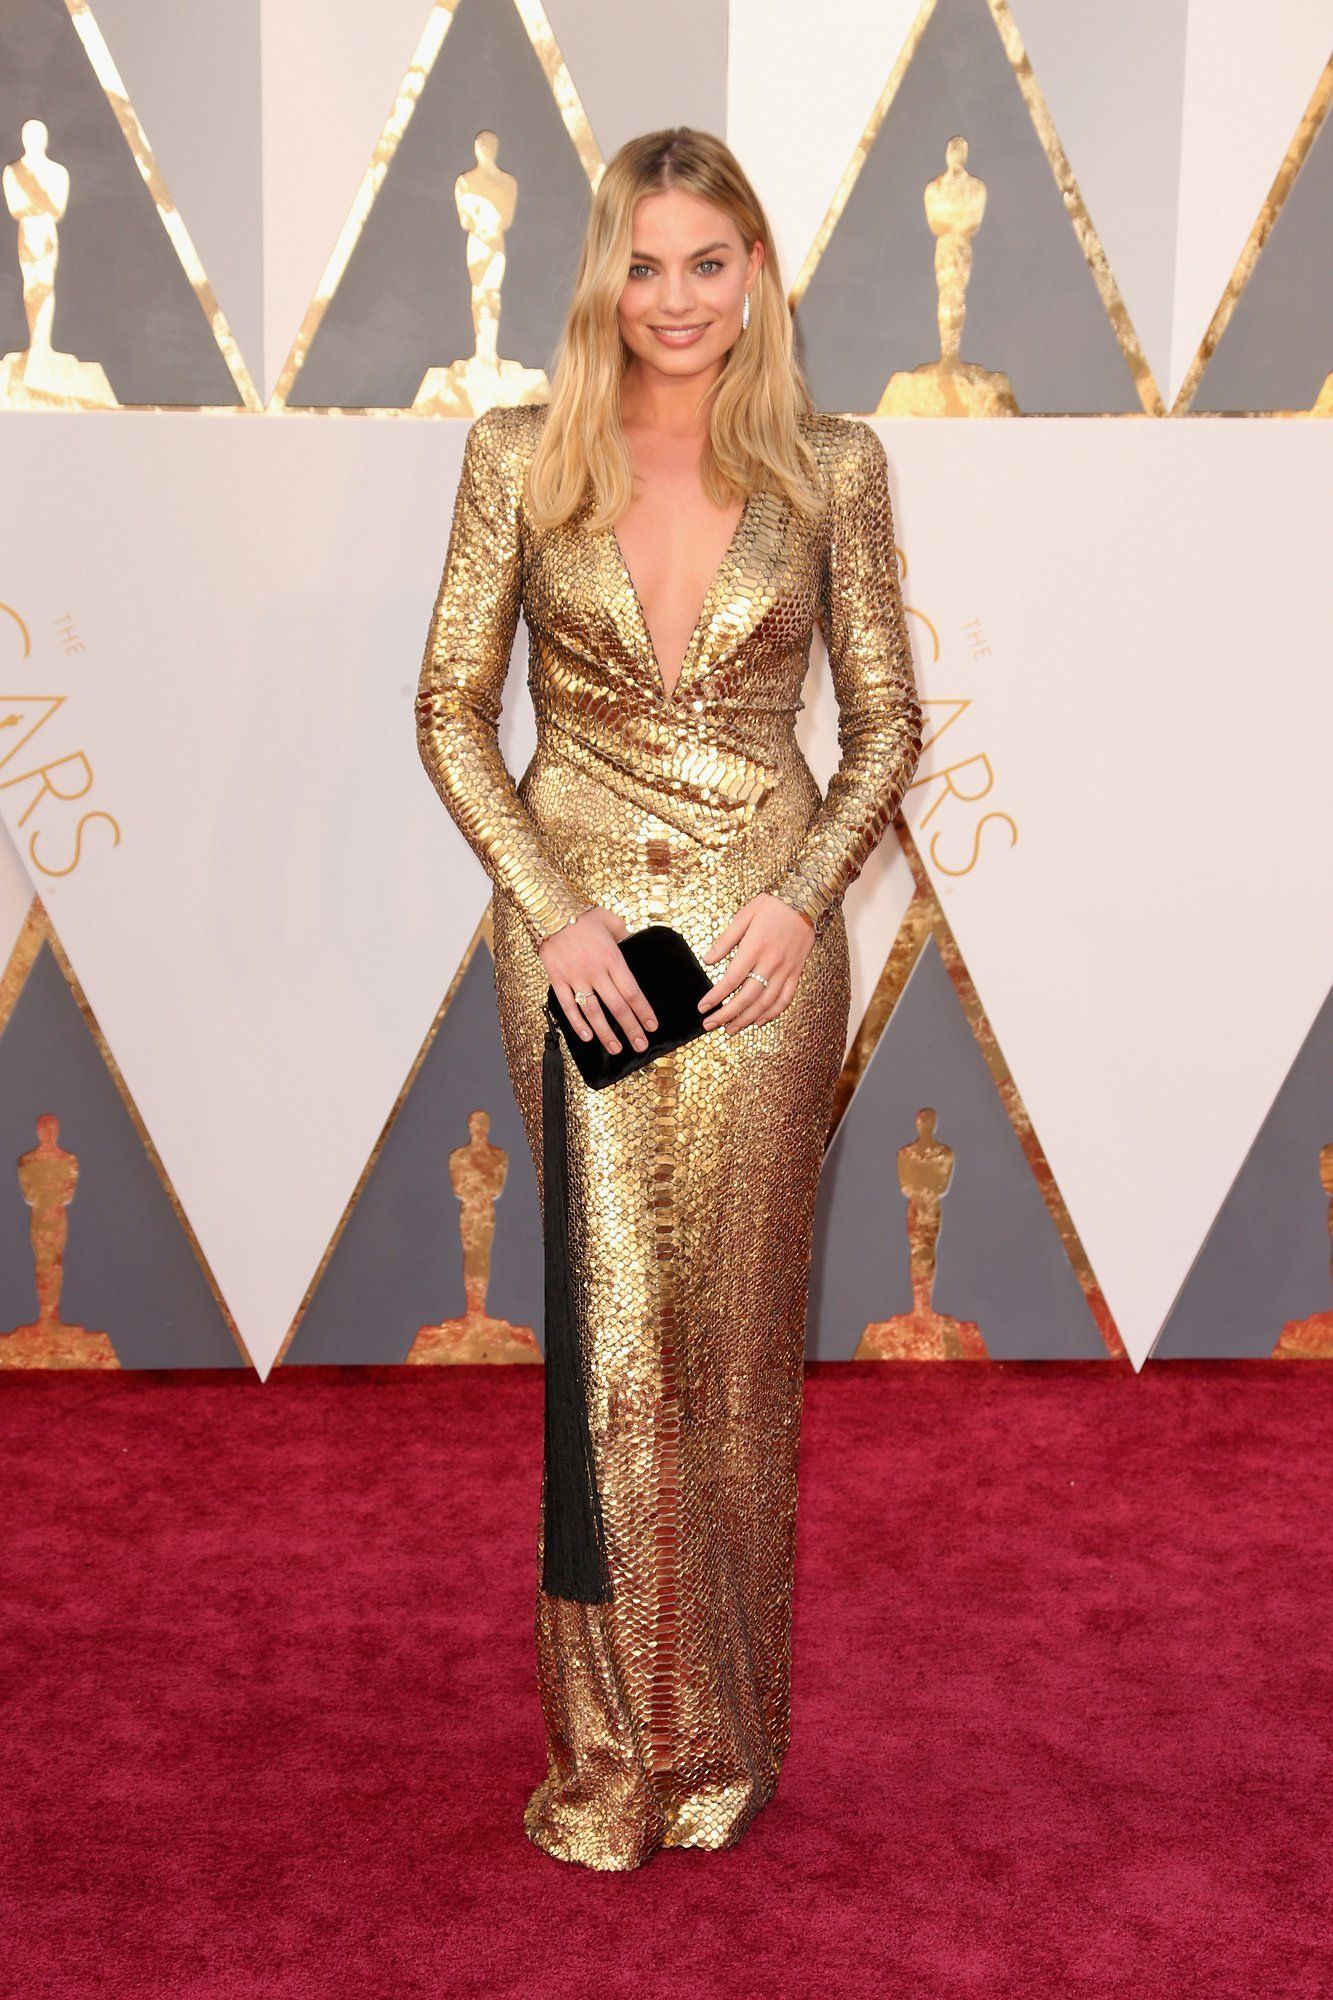 Margot Robbie Goes for Gold With Her Red Carpet Look at the Oscars af69adca940